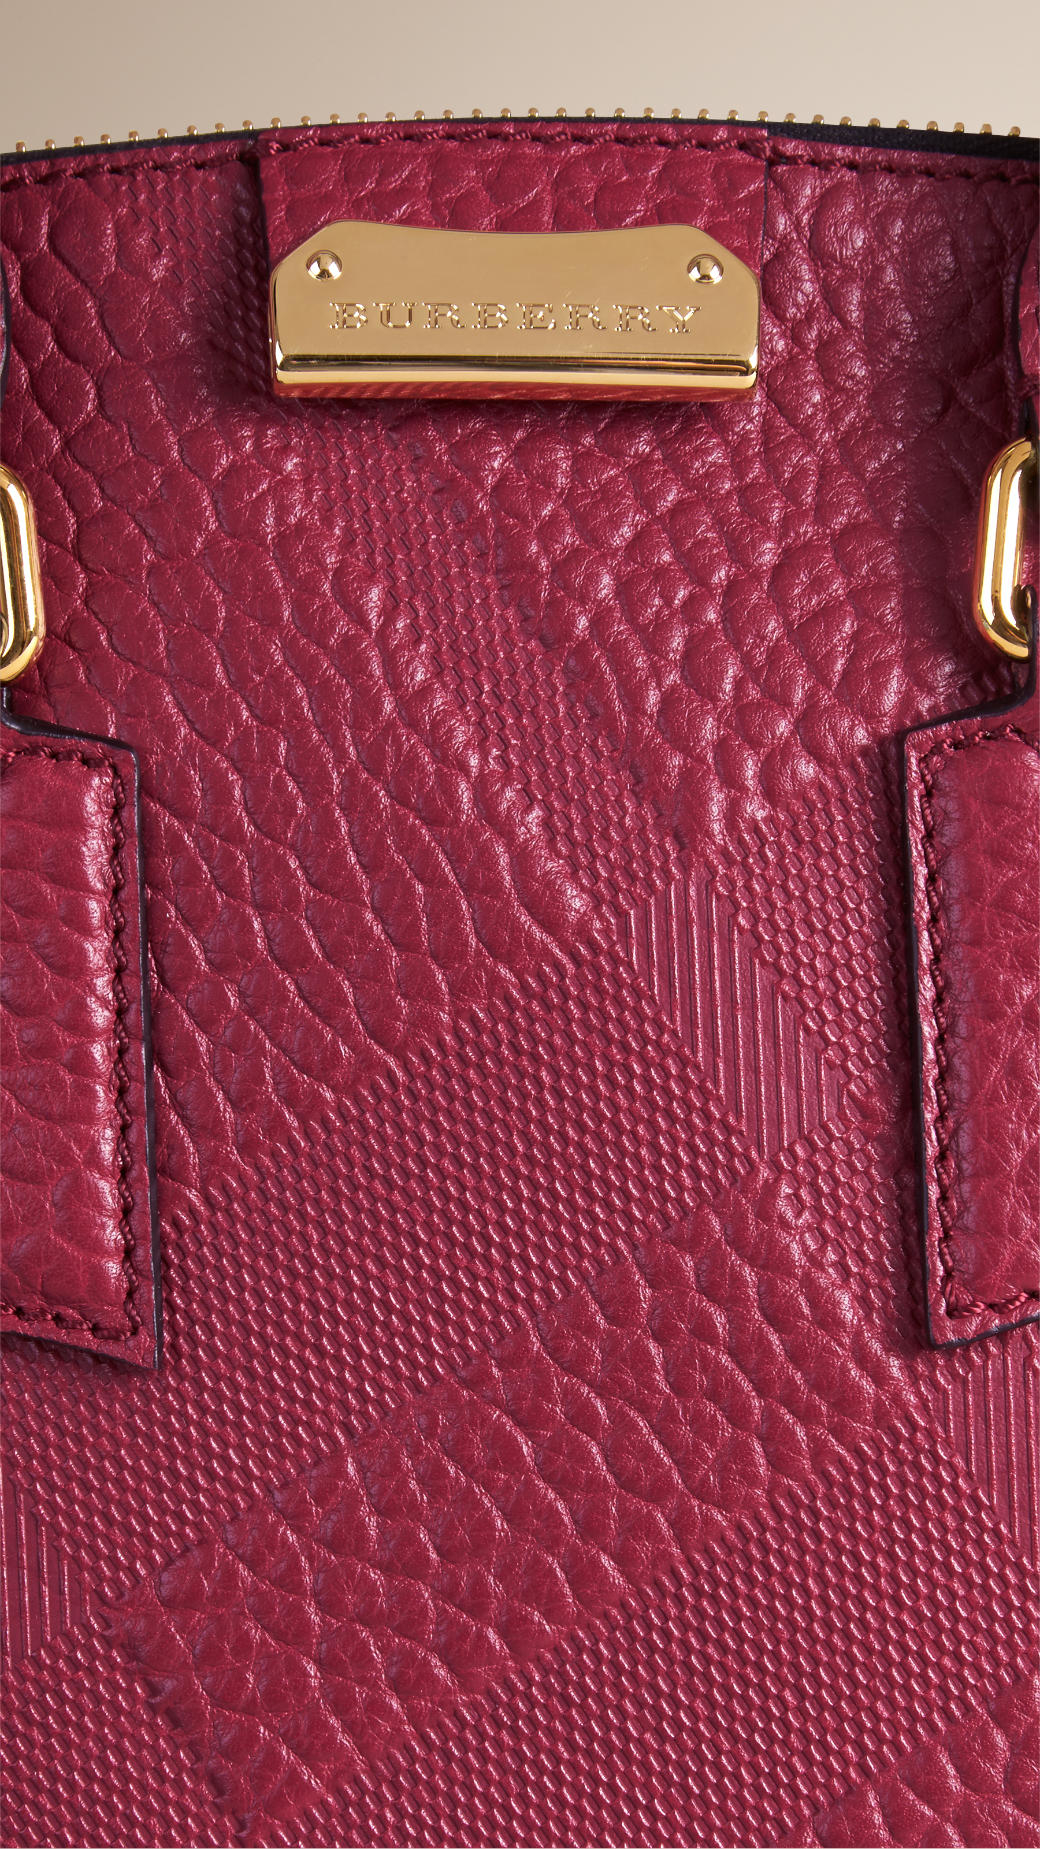 0b3ec3983ed Burberry The Small Orchard Embossed Check Leather Bag in Purple - Lyst